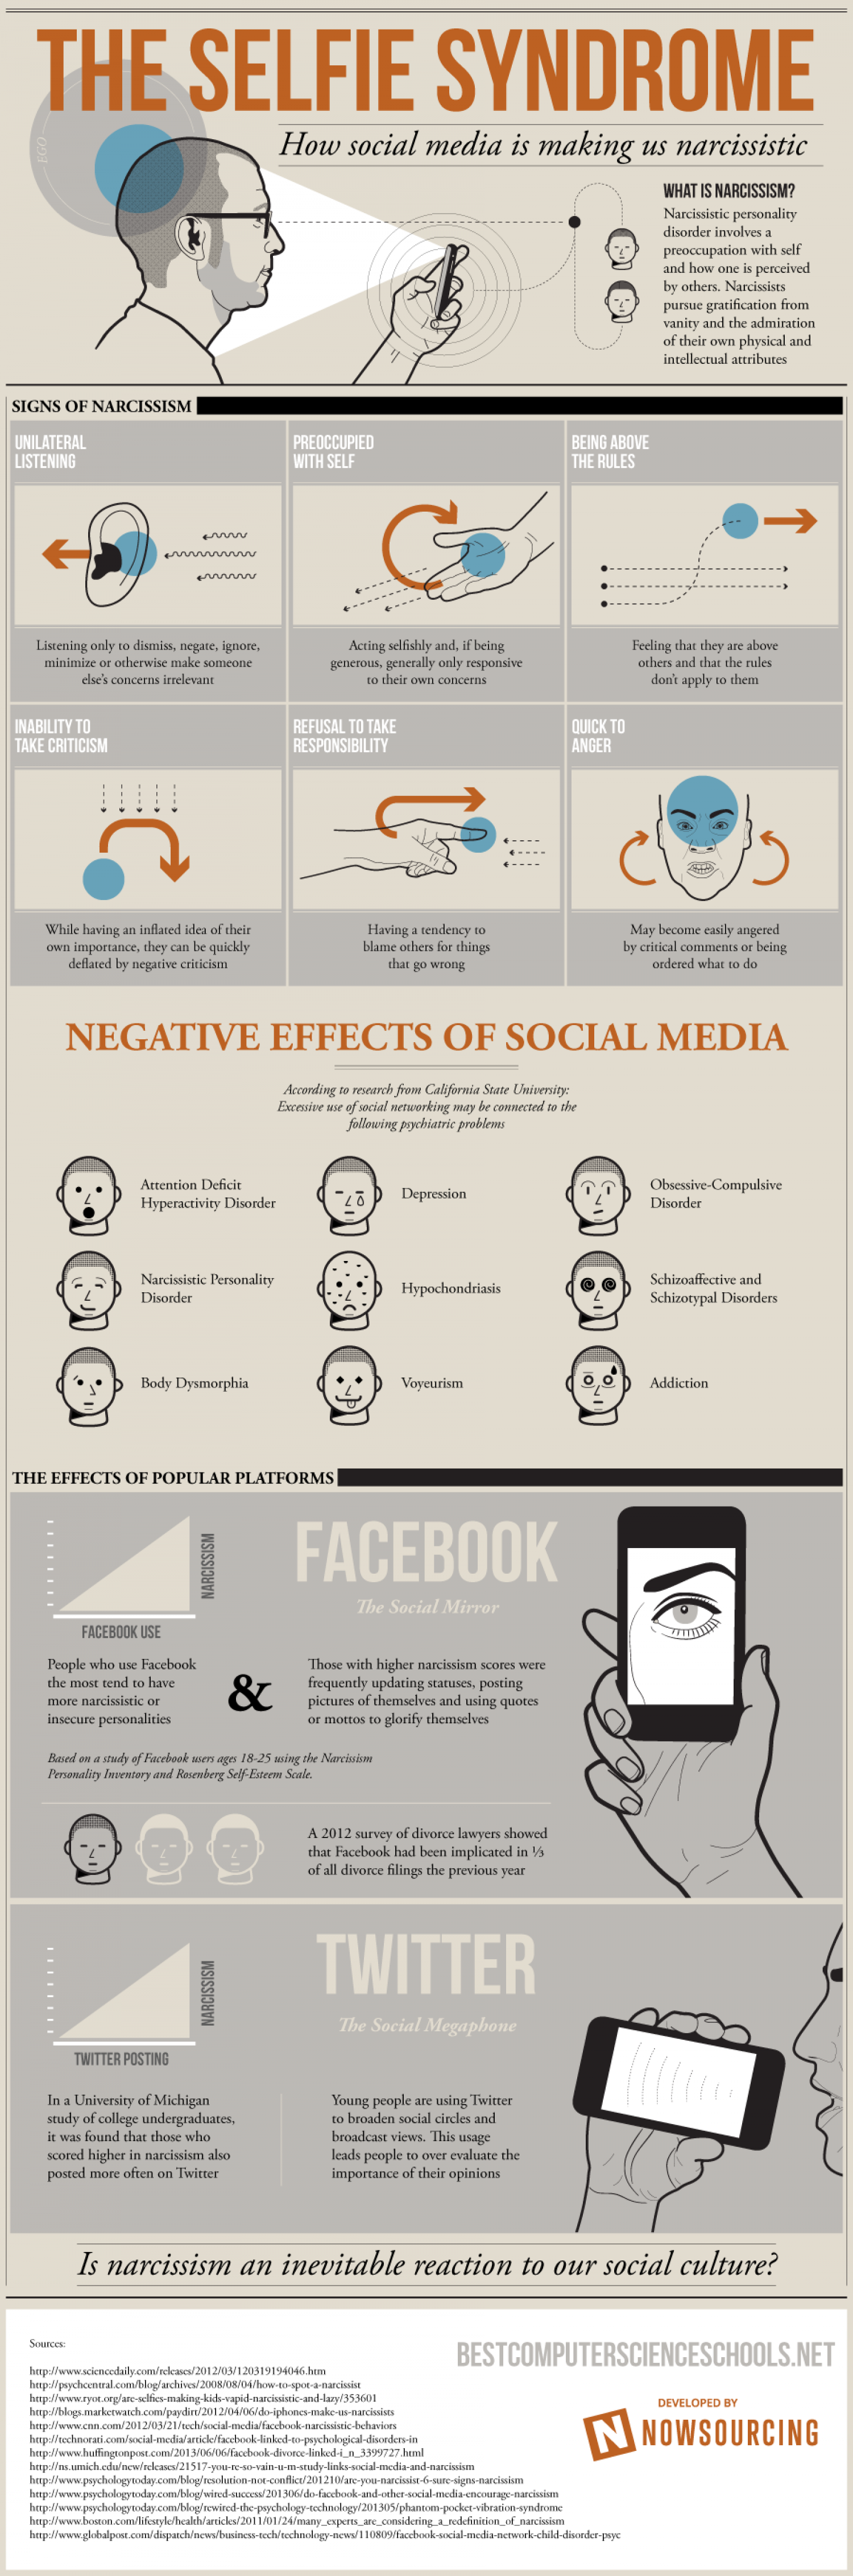 Selfie Syndrome – How Social Media is Making Us Narcissistic Infographic